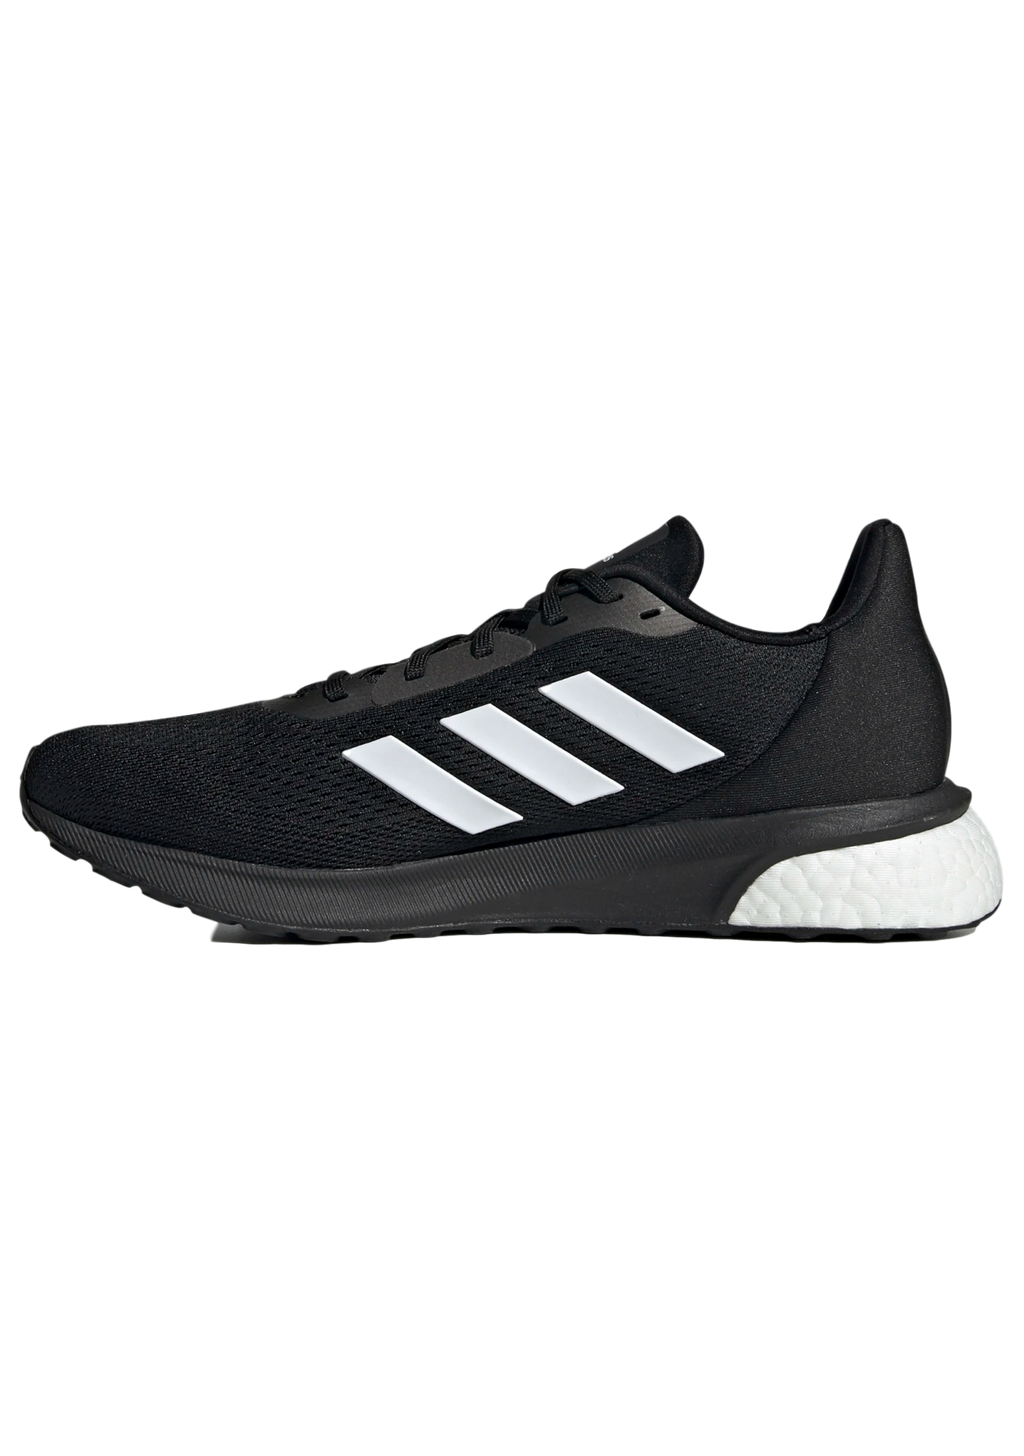 ADIDAS MENS ASTRARUN SHOES <br> EF8850